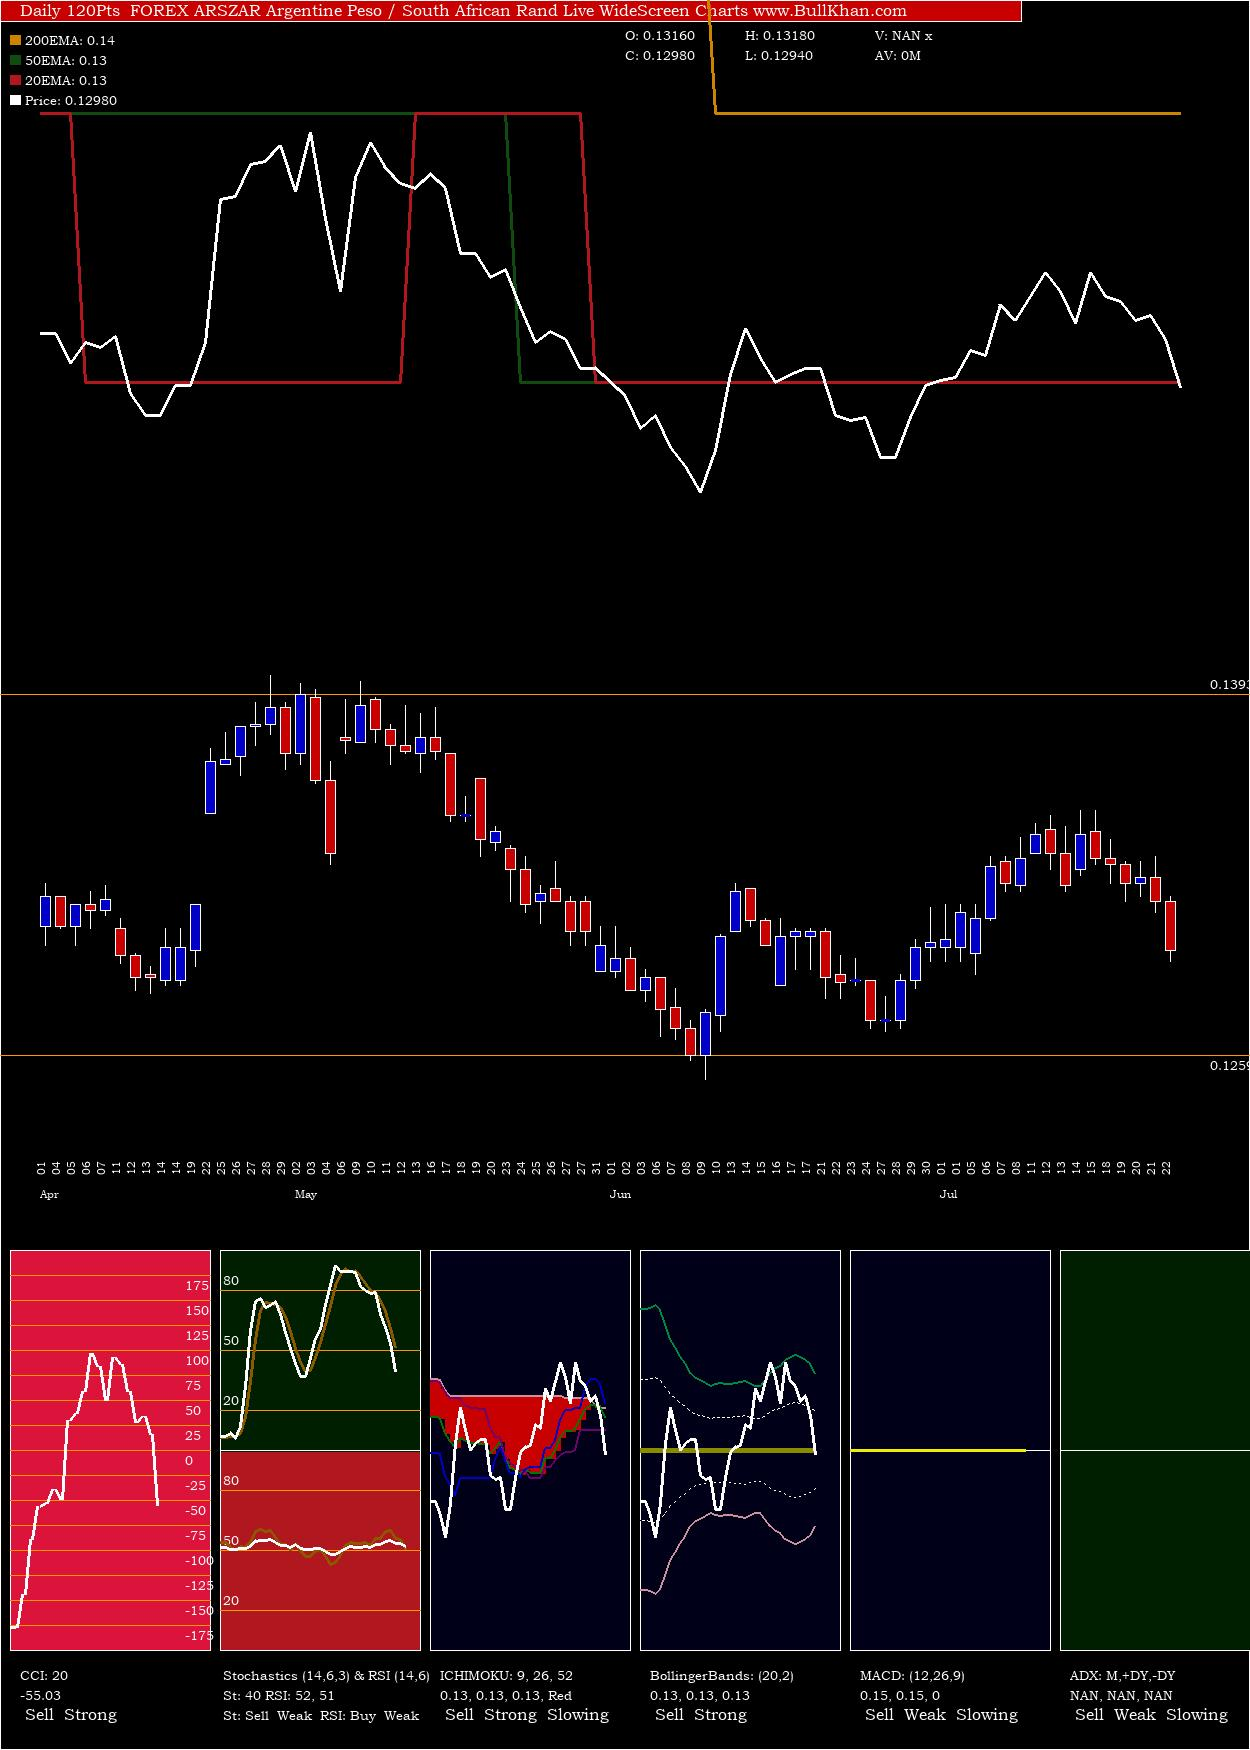 Argentine Peso / South African Rand charts and indicators